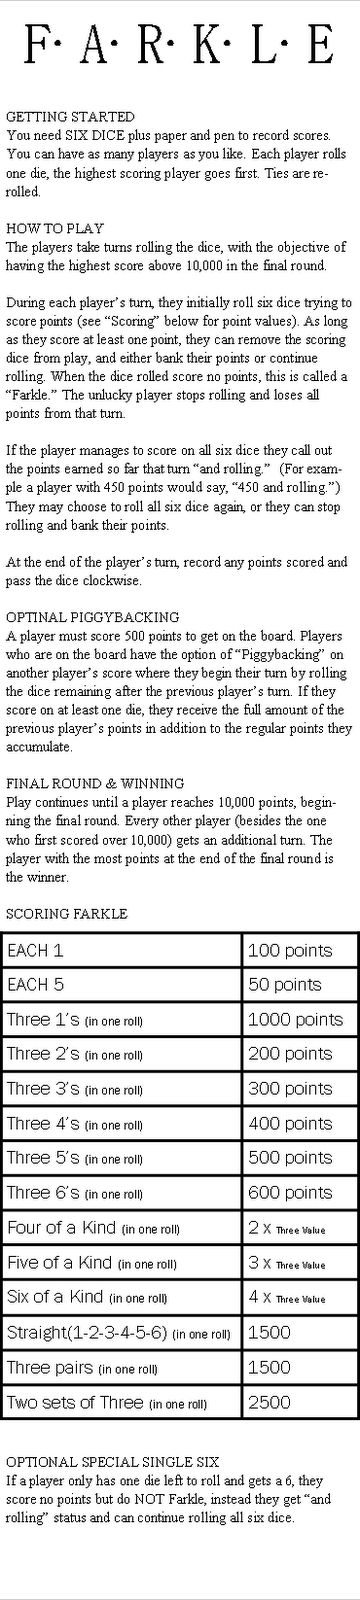 how to keep score in farkle